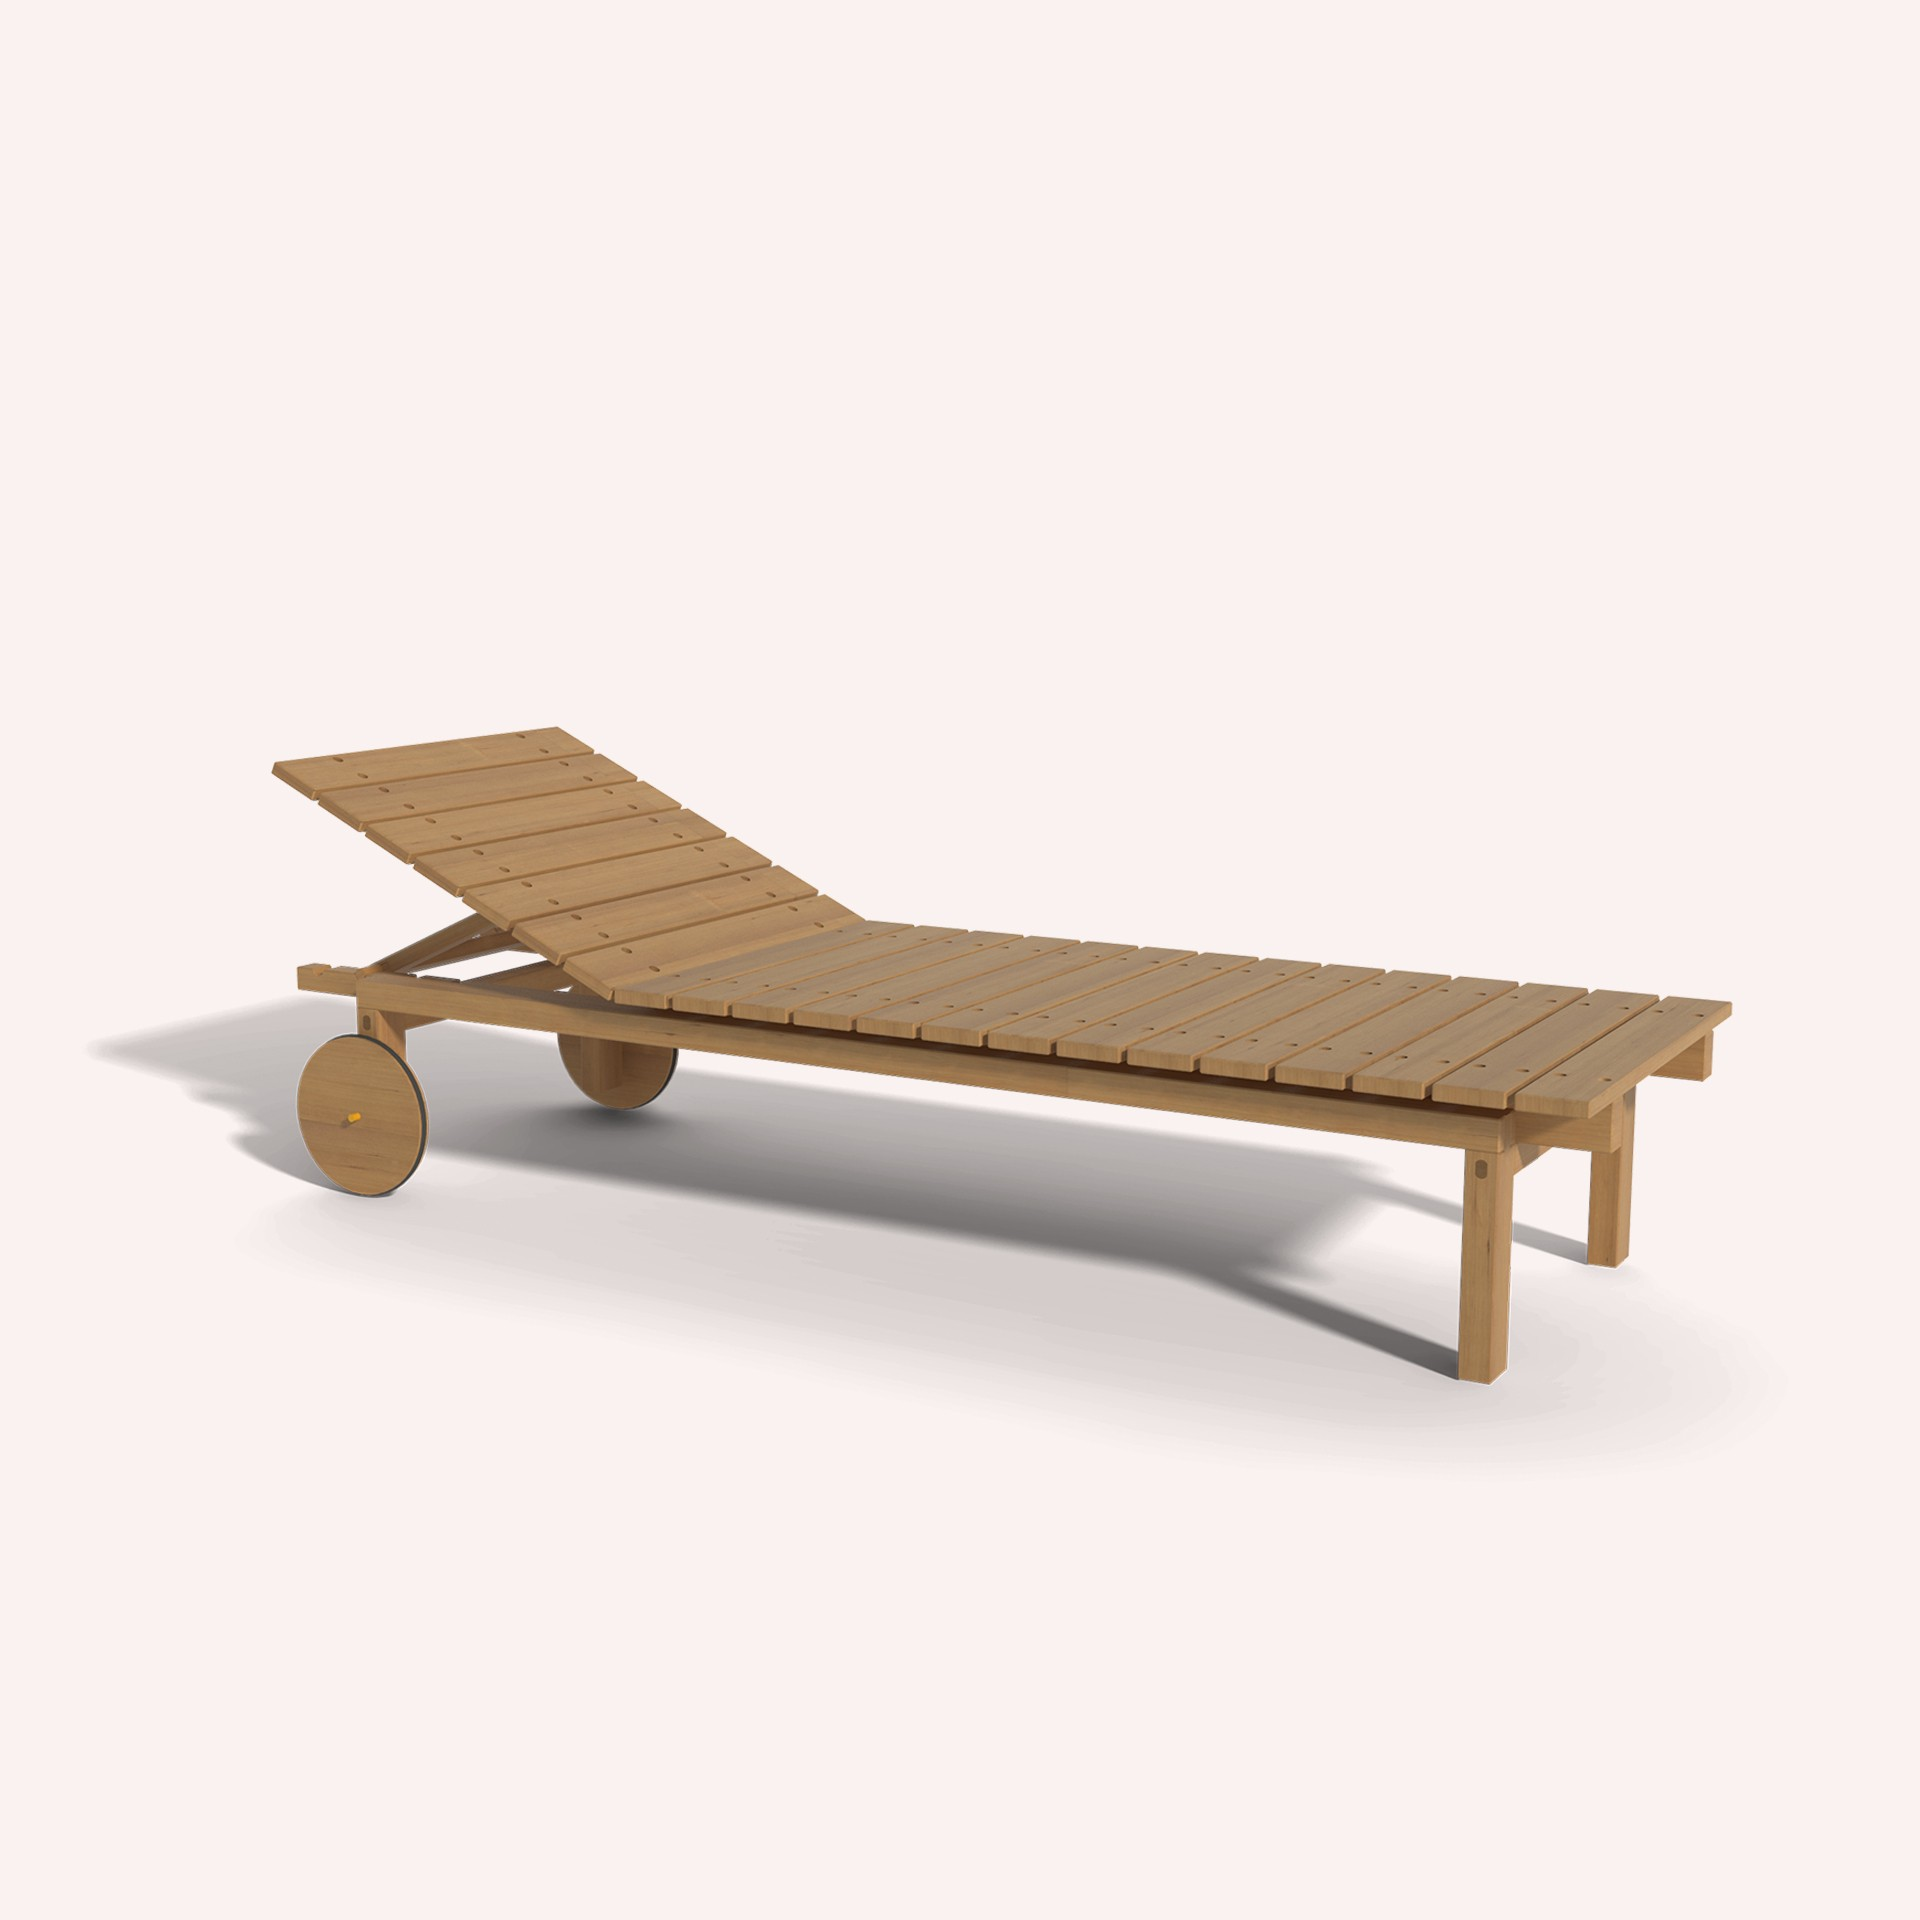 Wooden Deck Chair Ilios